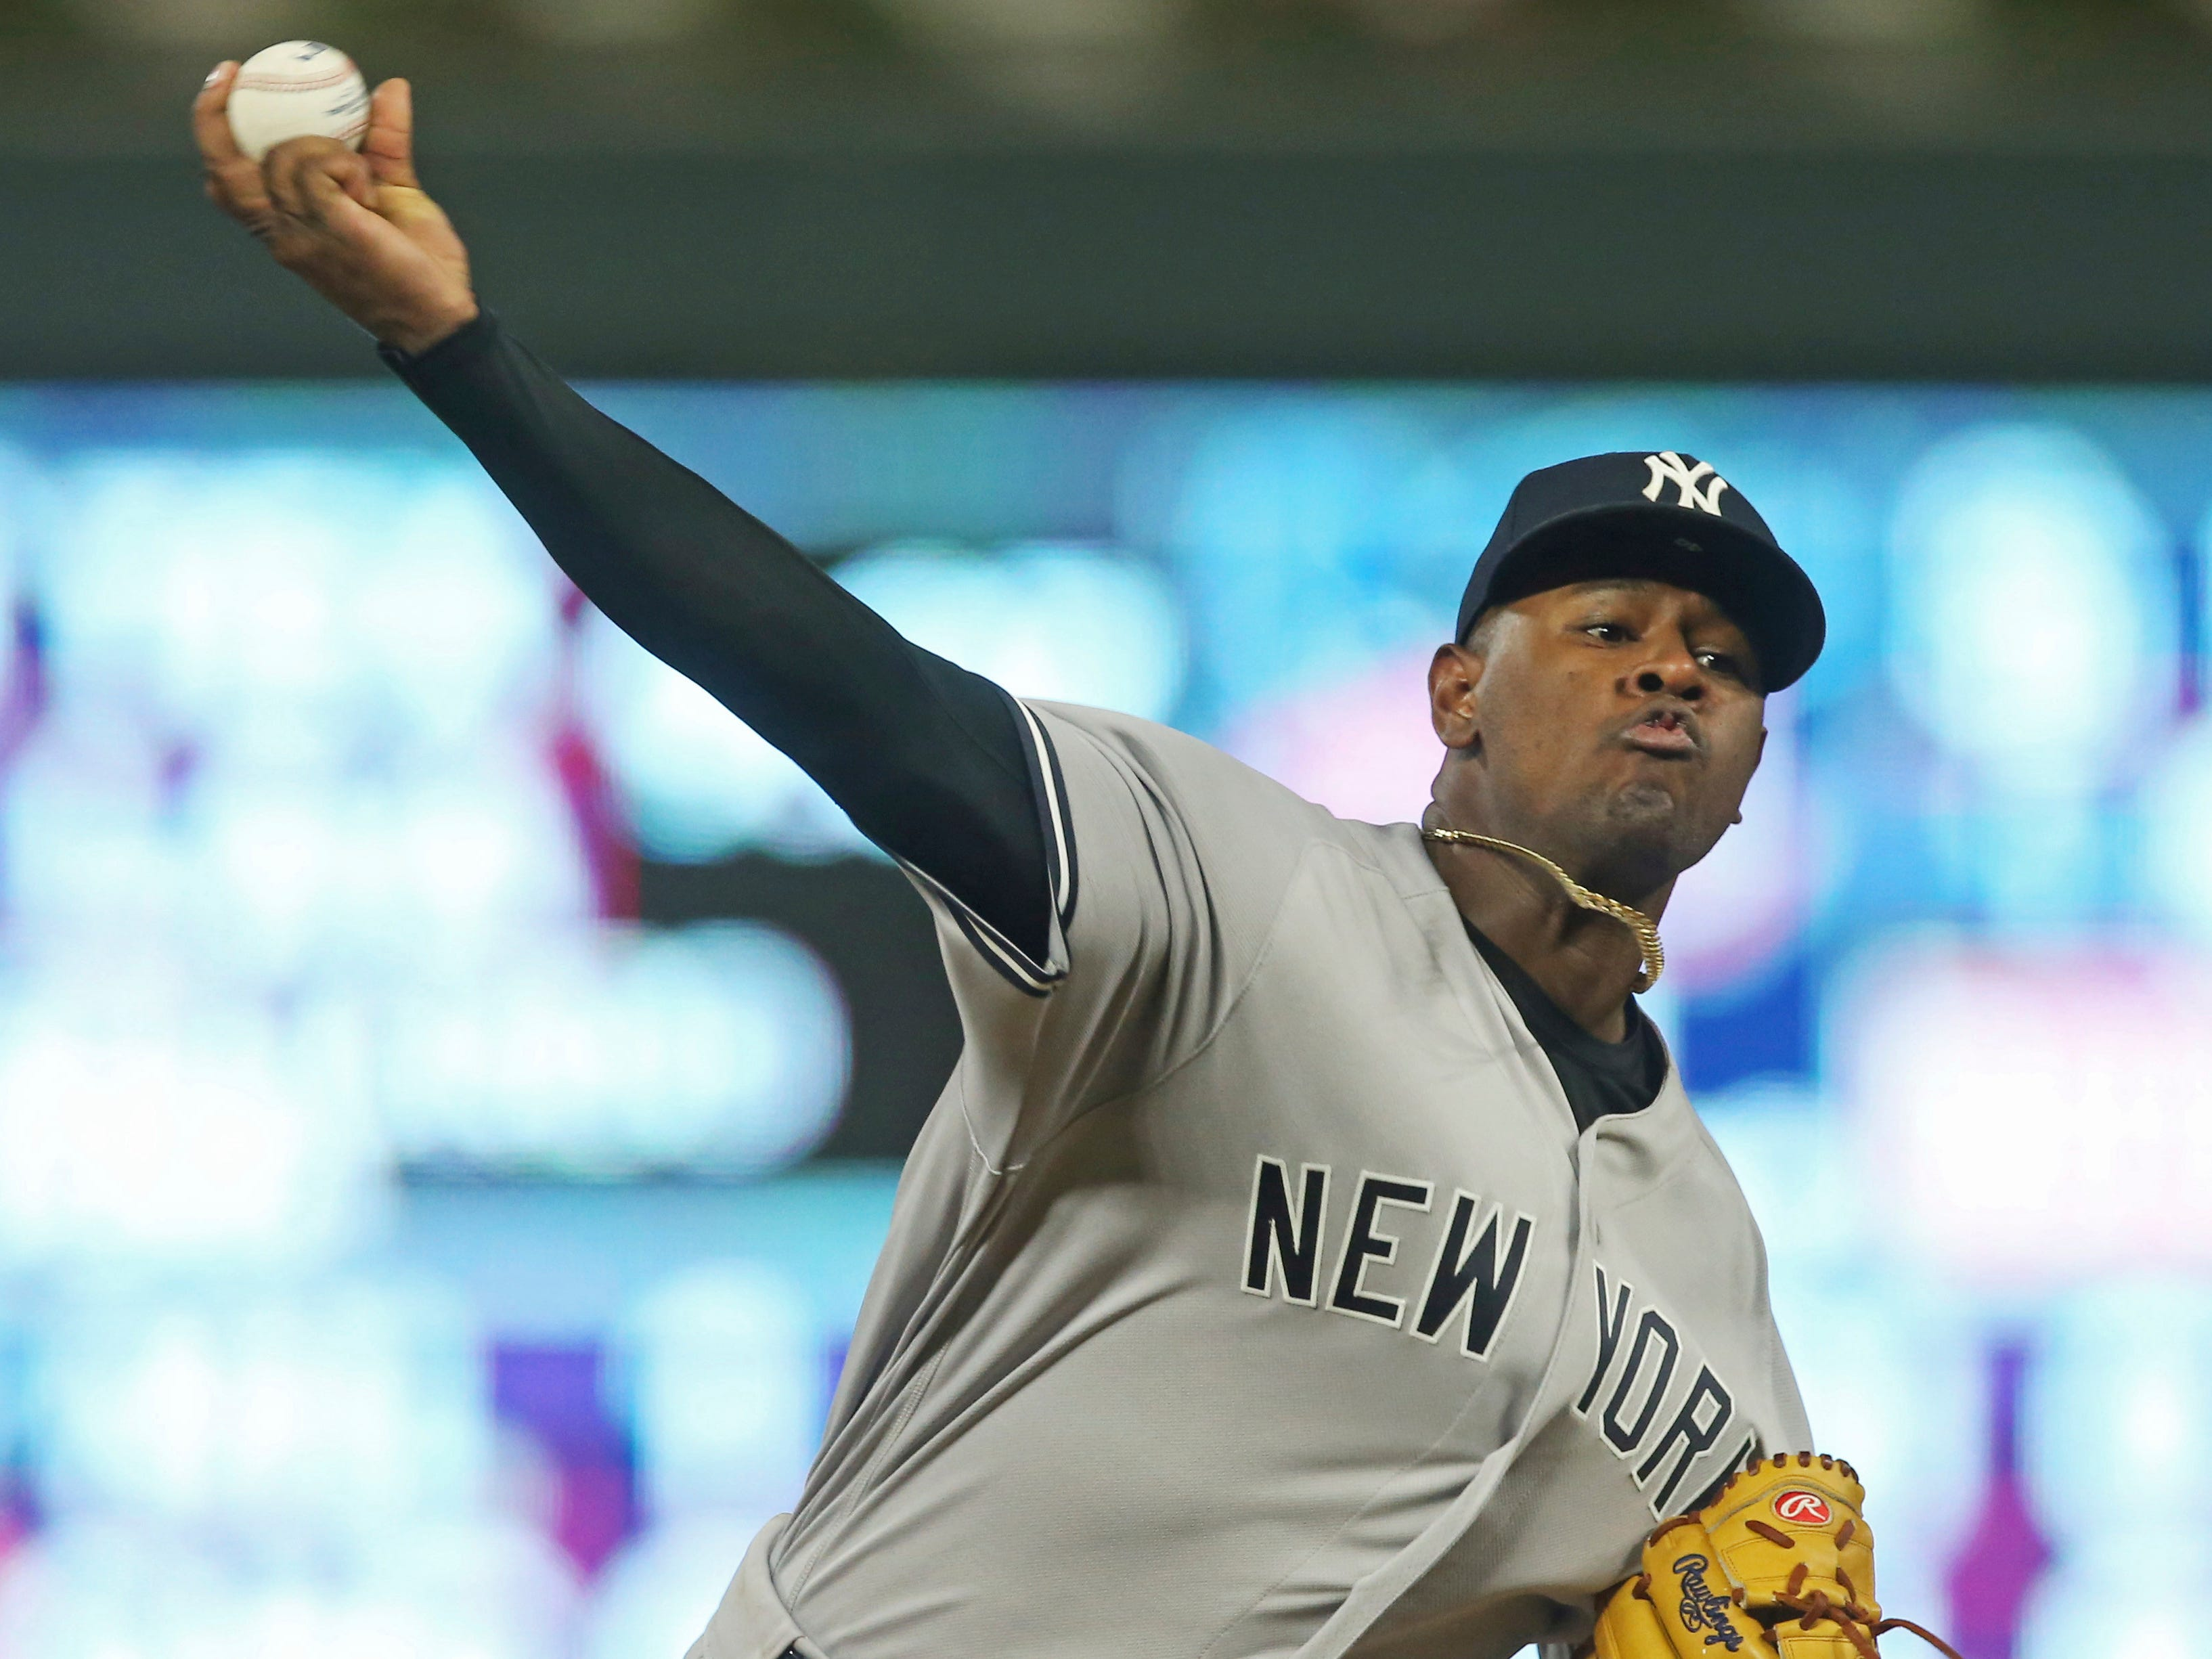 New York Yankees pitcher Luis Severino throws against the Minnesota Twins in the fourth inning of a baseball game Wednesday, Sept. 12, 2018, in Minneapolis.